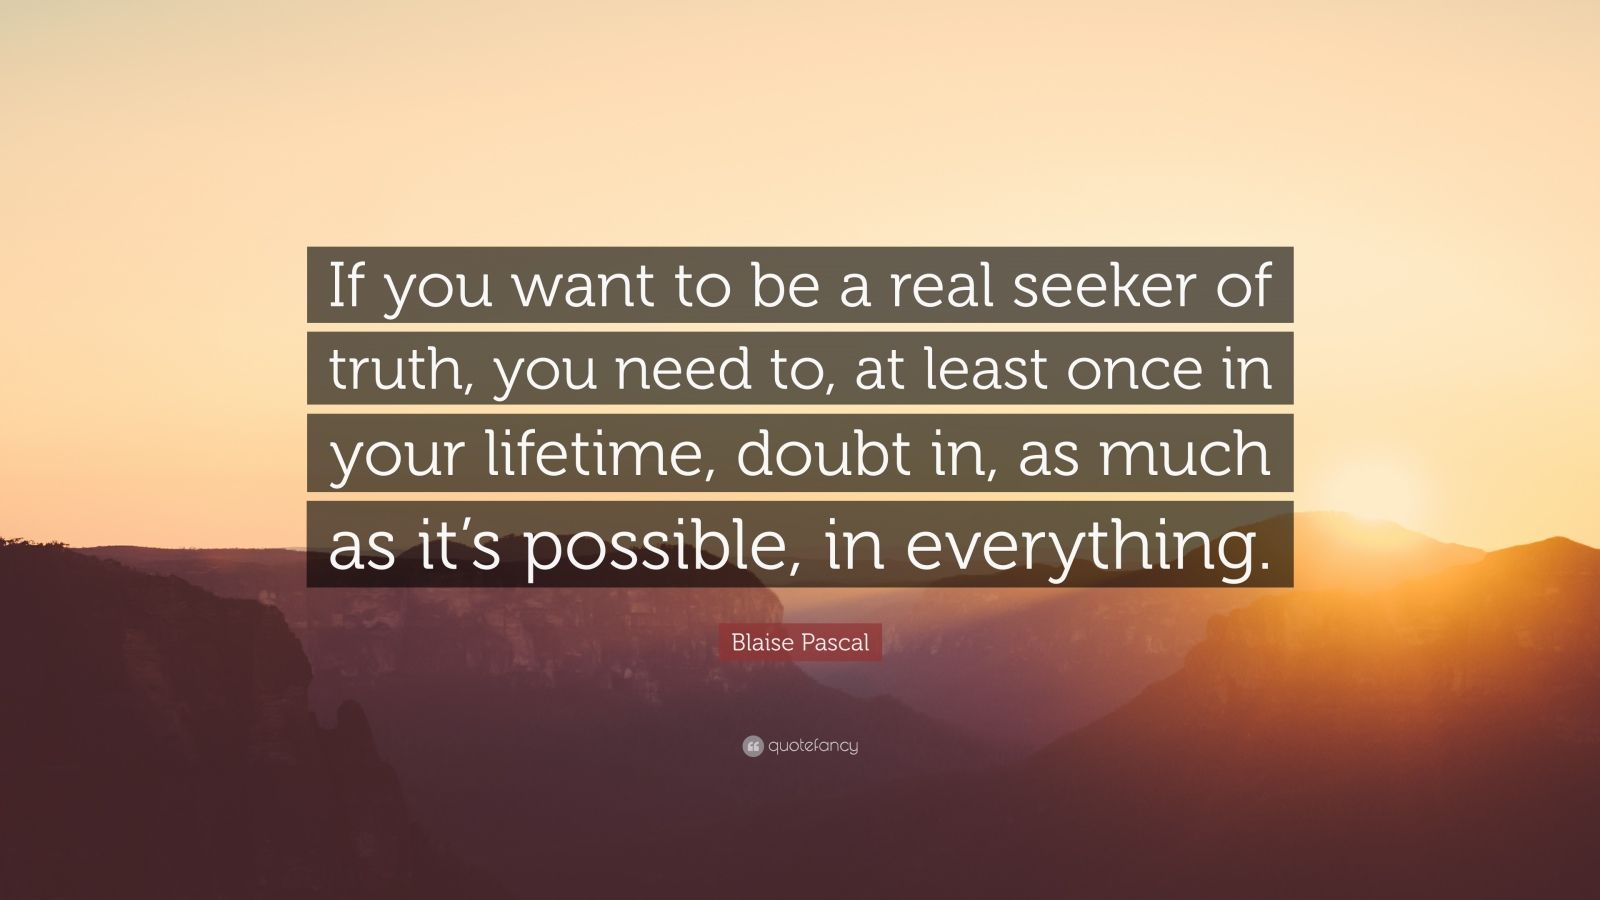 """Blaise Pascal Quote: """"If you want to be a real seeker of truth, you need to, at least once in your lifetime, doubt in, as much as it's possible, in everything."""""""